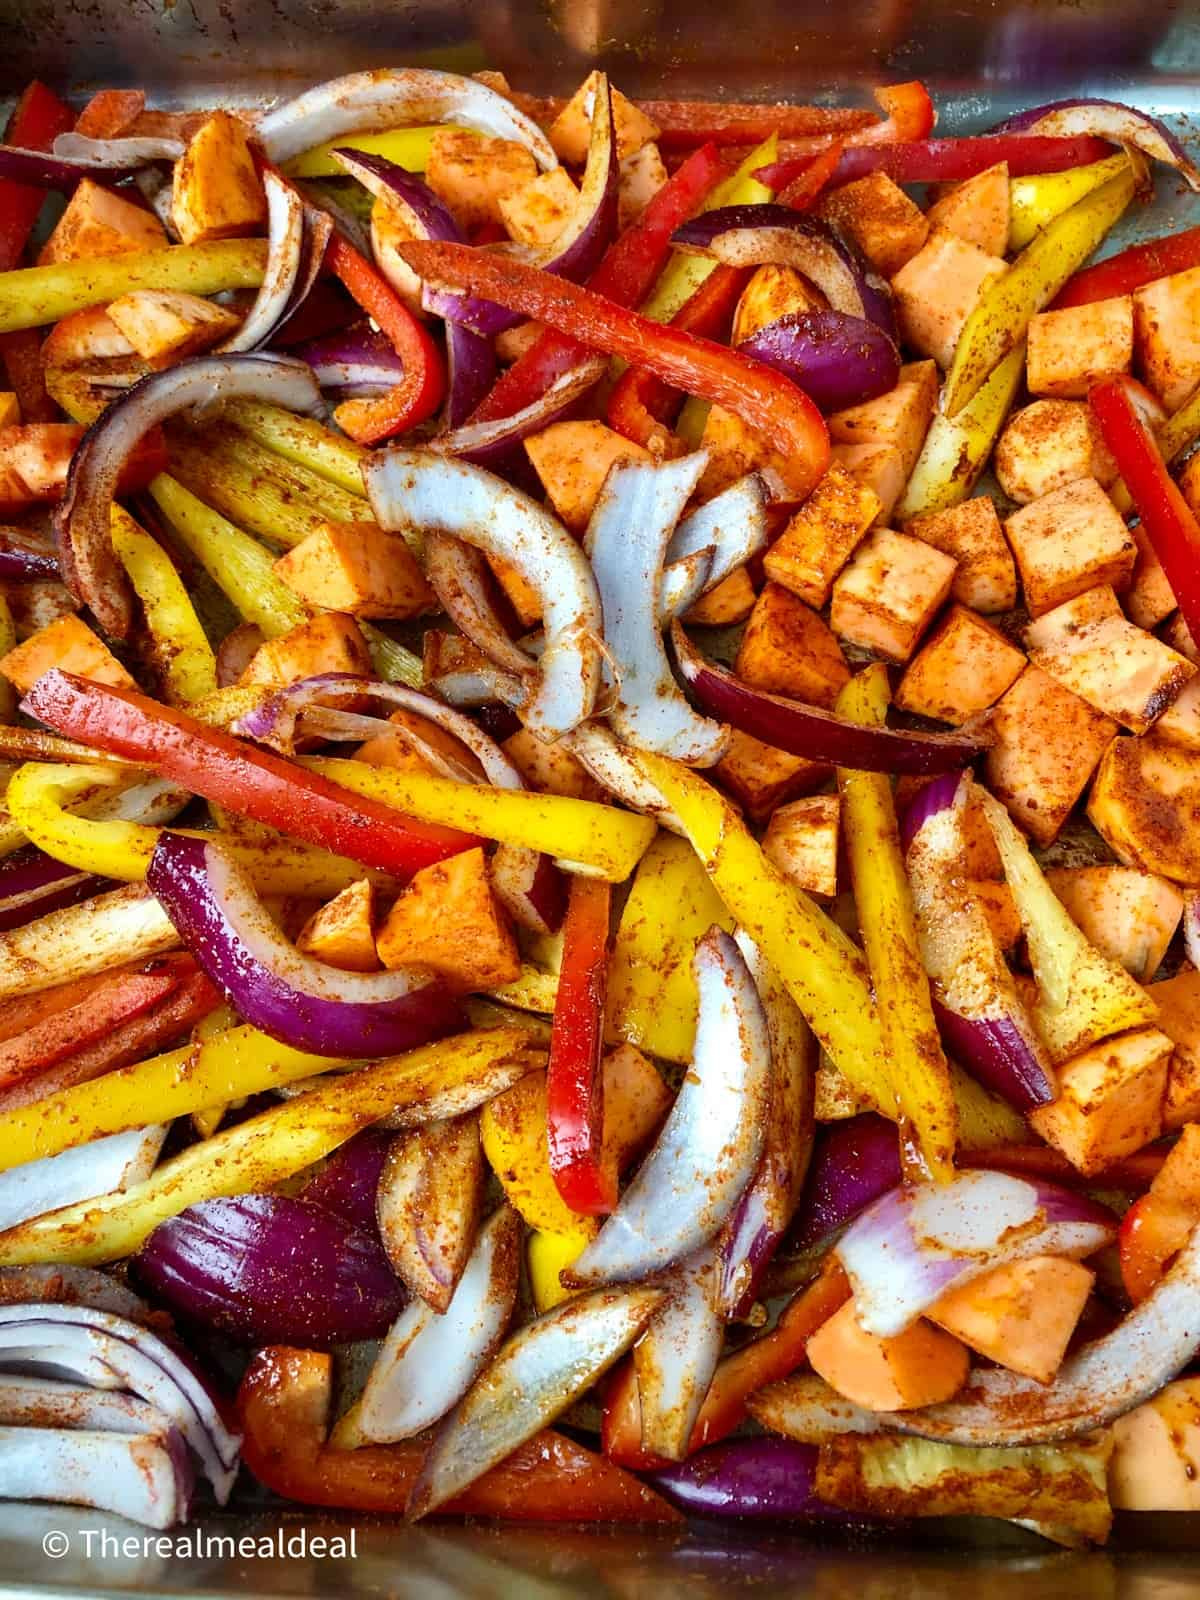 sliced red and yellow peppers red onion diced sweet potato coated in spice mix in roasting tray